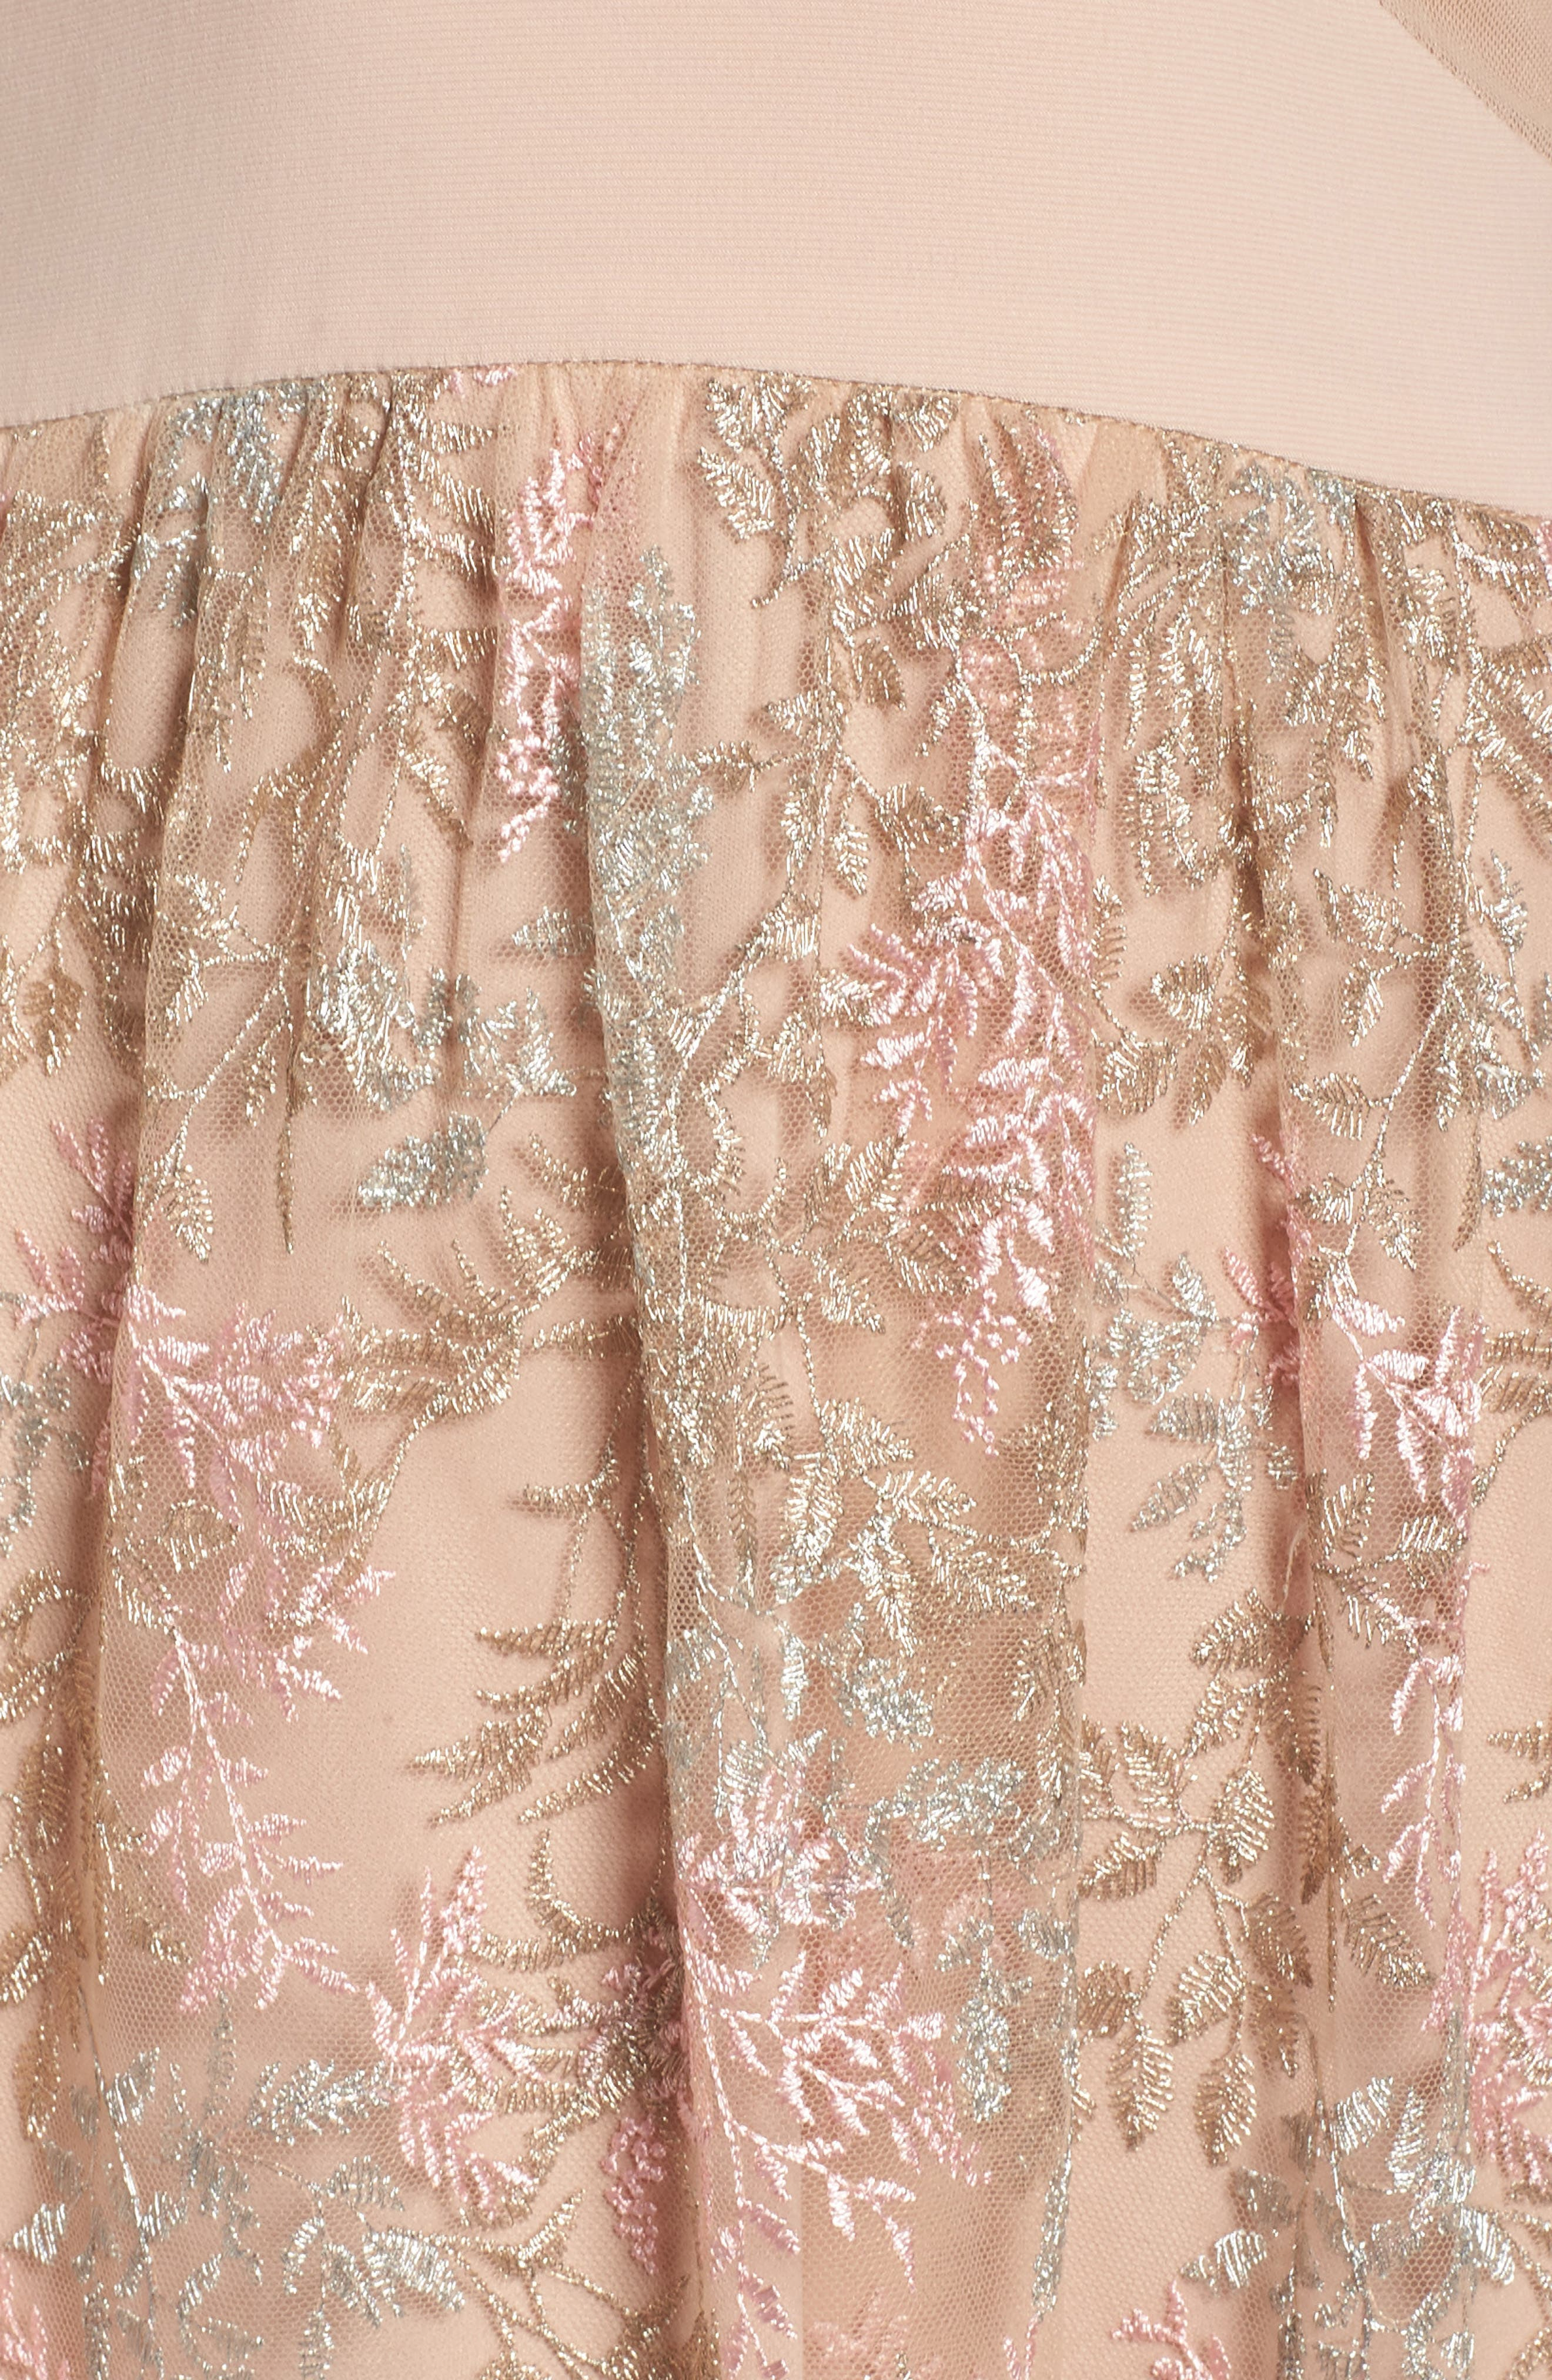 Mesh Inset Embroidered Gown,                             Alternate thumbnail 5, color,                             Blush/ Multi